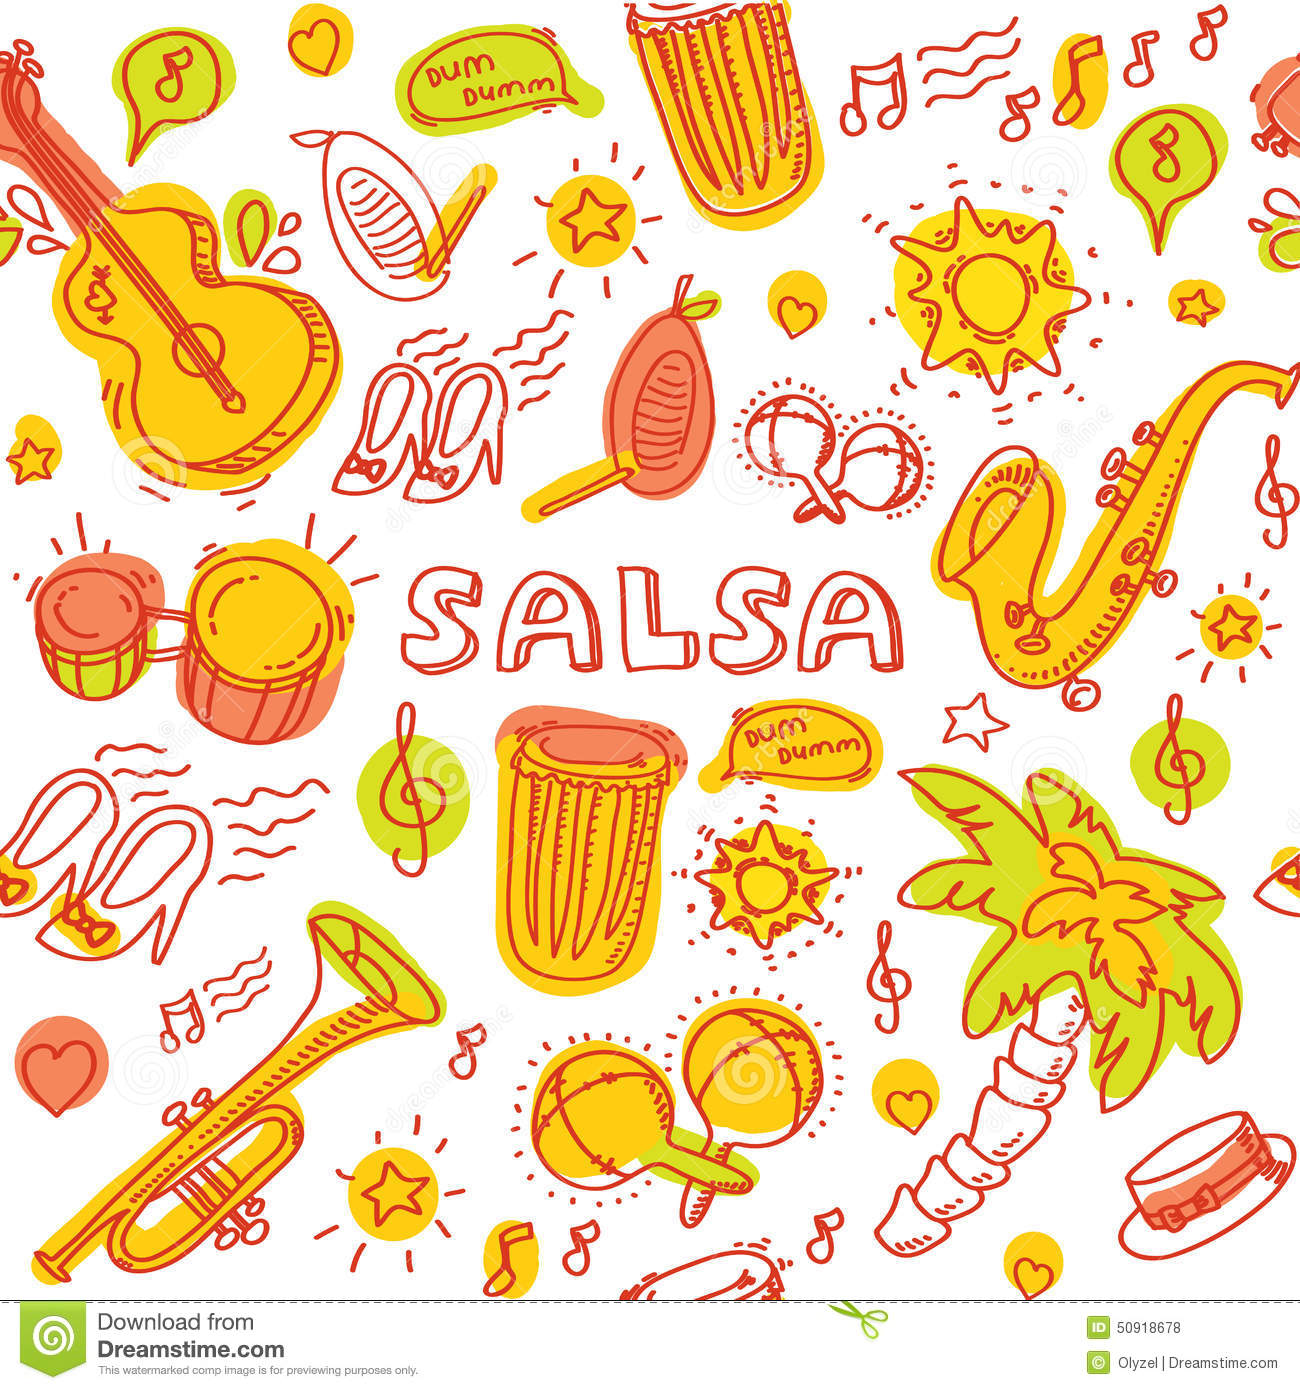 Salsa Music And Dance Illustration With Musical Instruments, Palms ...